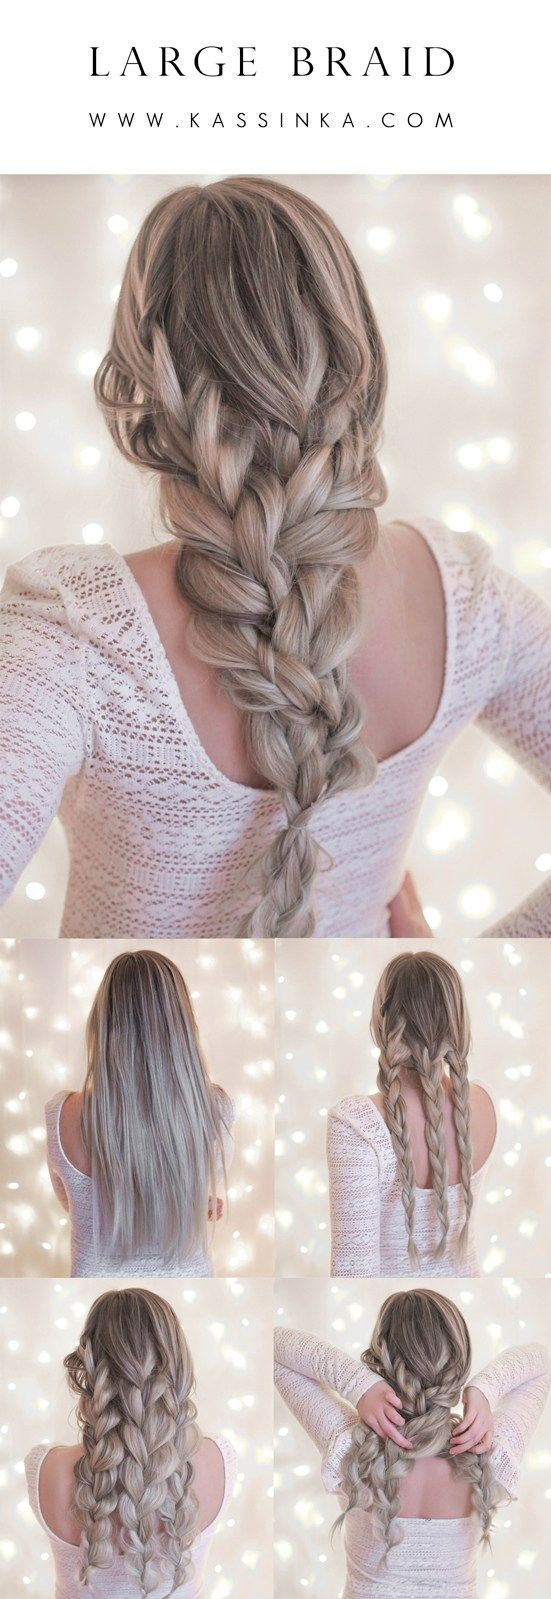 Massive Braid Hair Tutorial Kassinka Braided Hairstyles